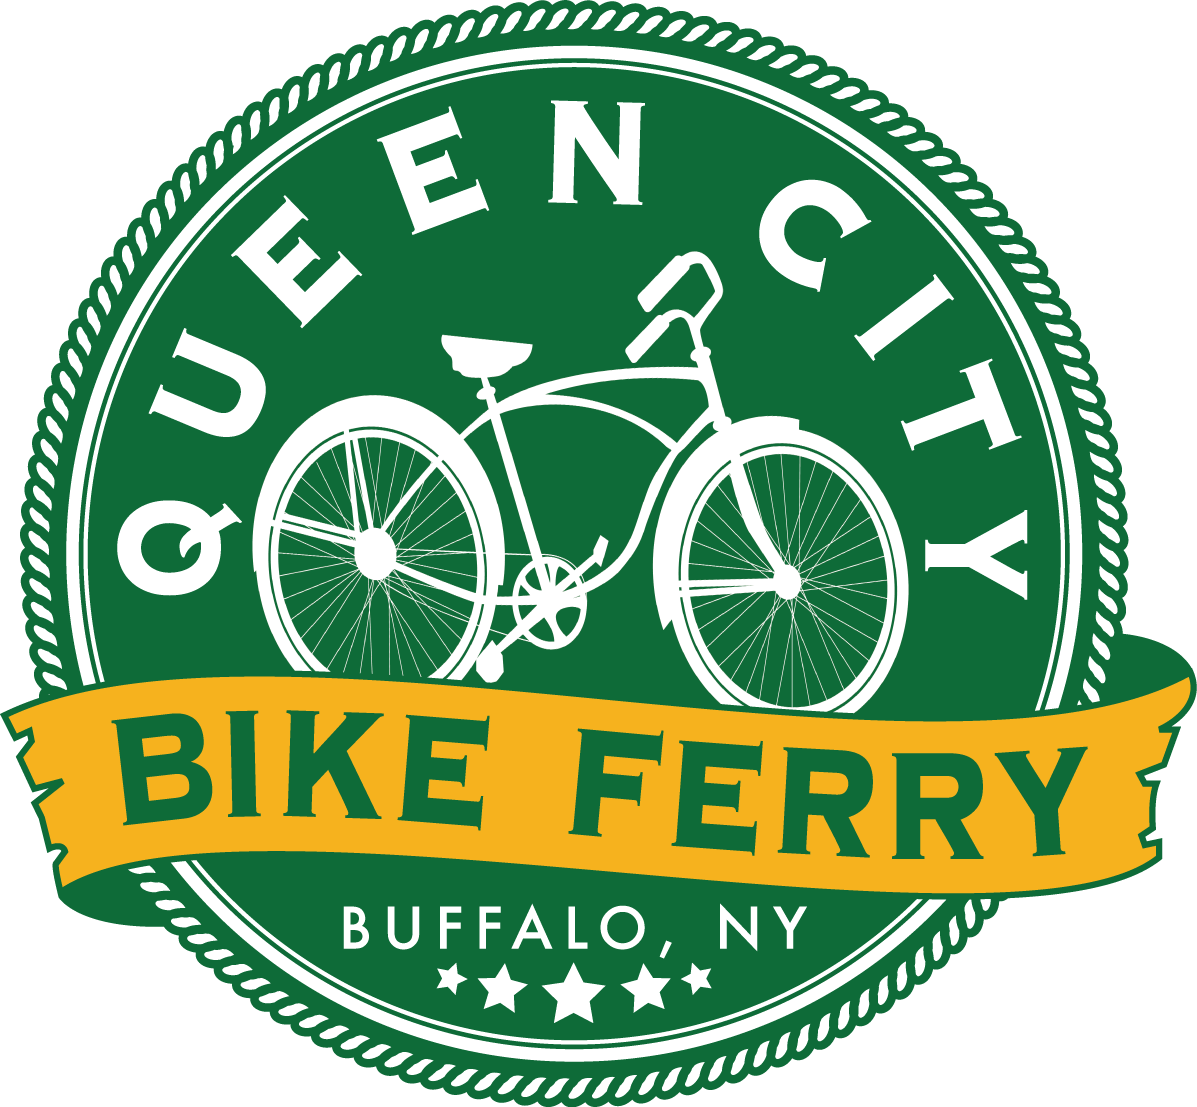 Queen City Bike Ferry